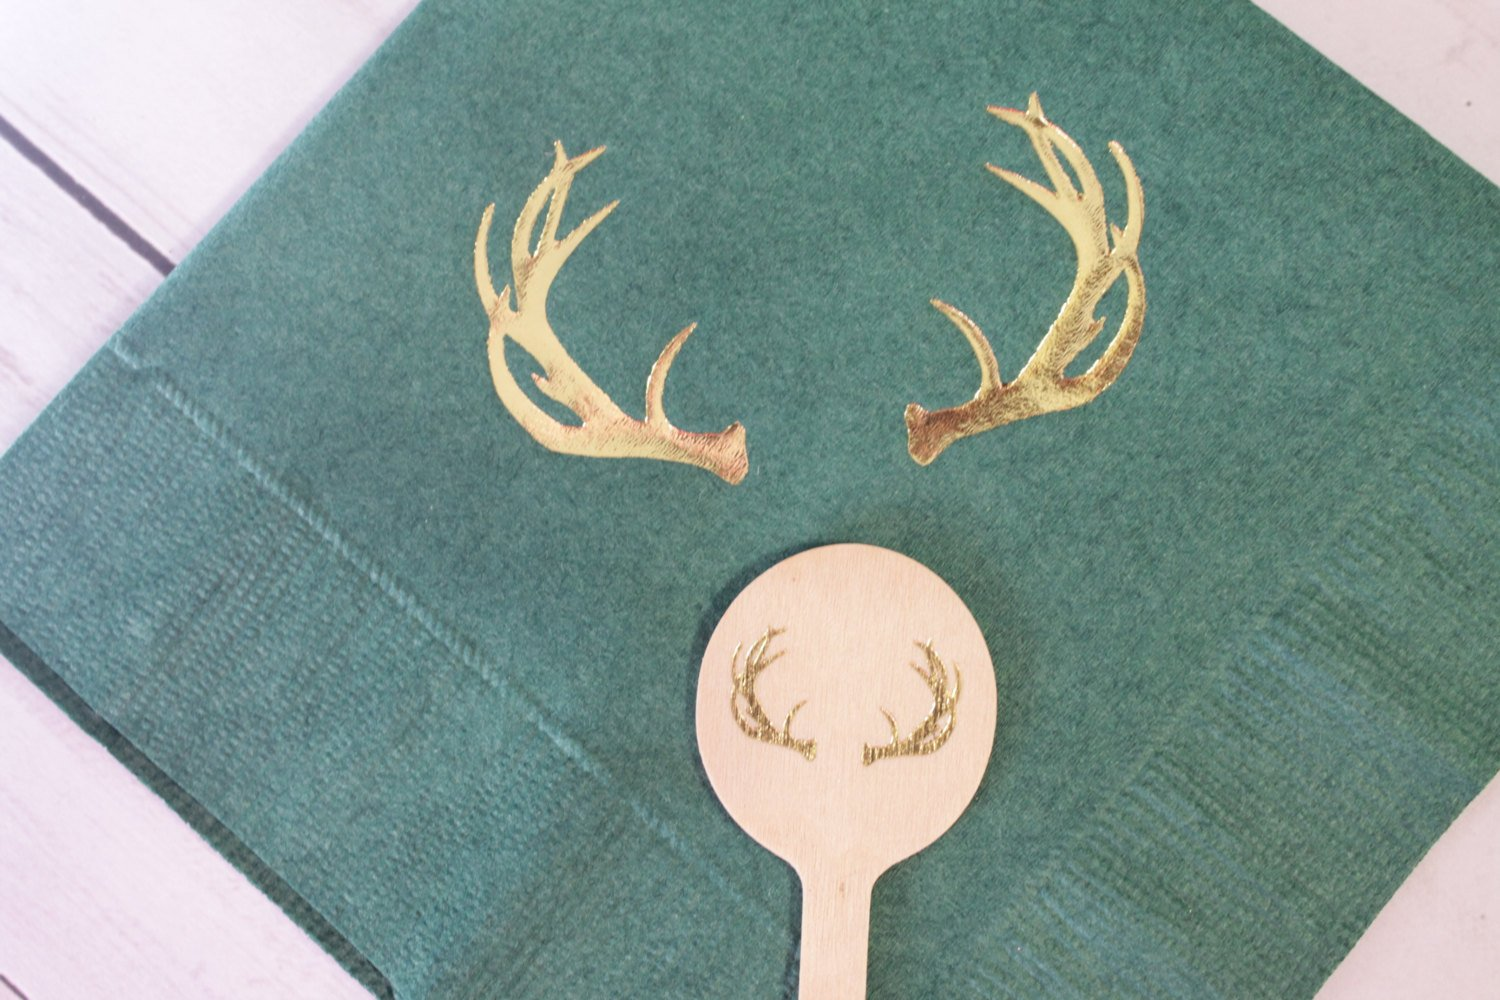 Antler Christmas Wooden Coffee or Drink Stirrers in Gold Foil